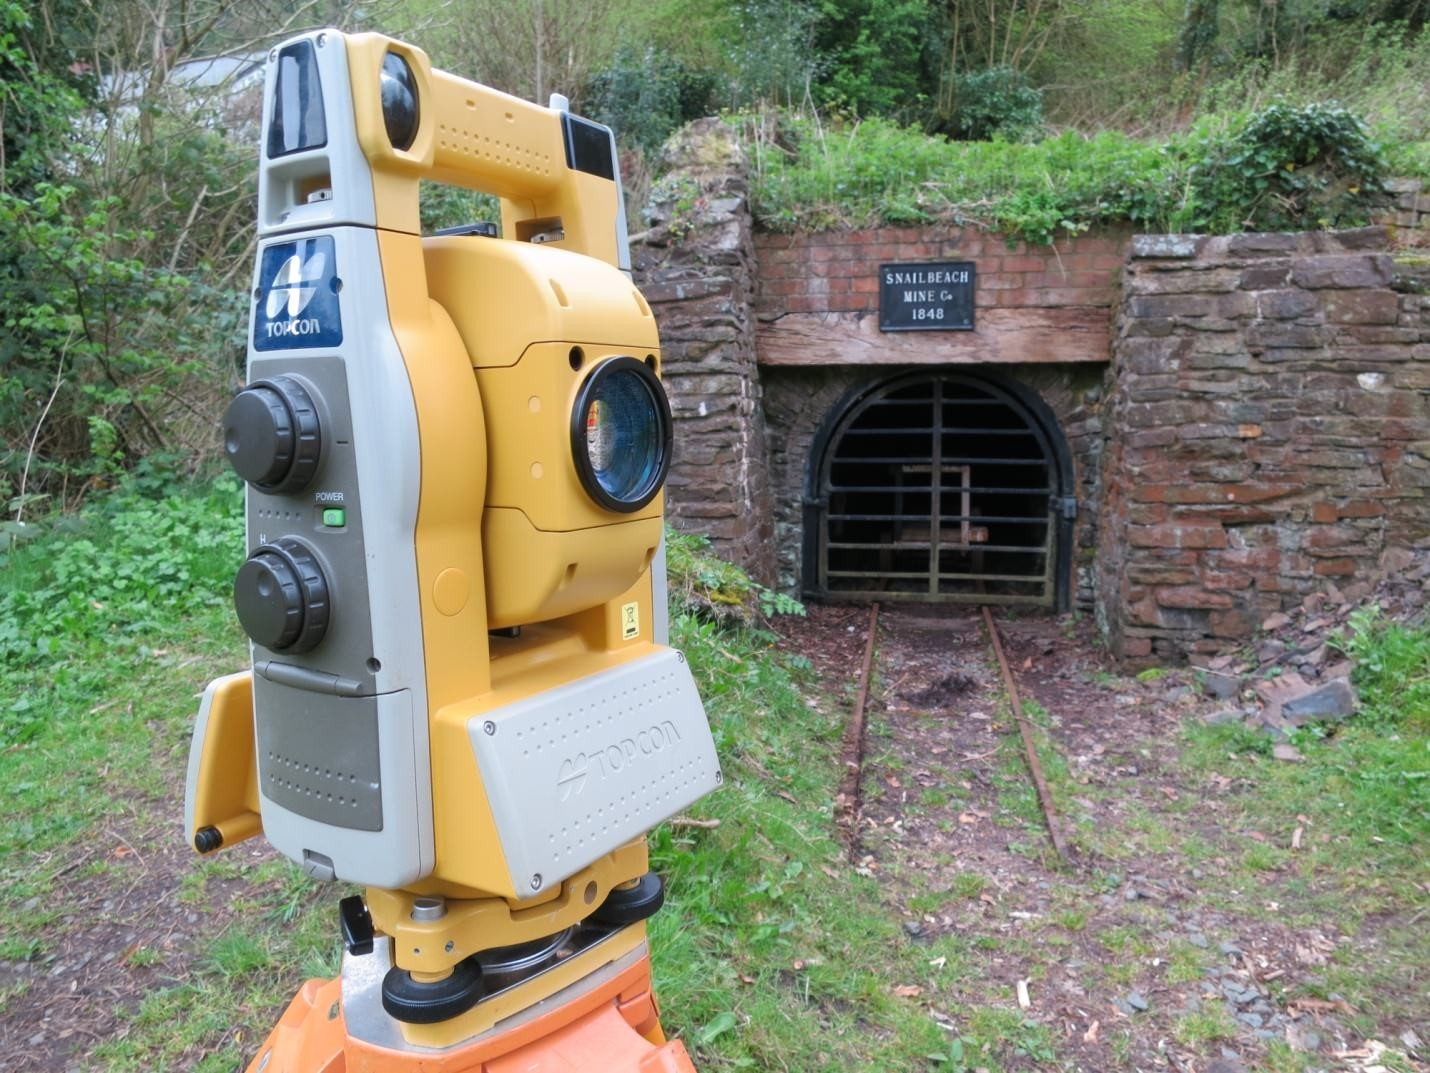 Snailbeach Mine, Day Level Survey for Shropshire Mining Trust